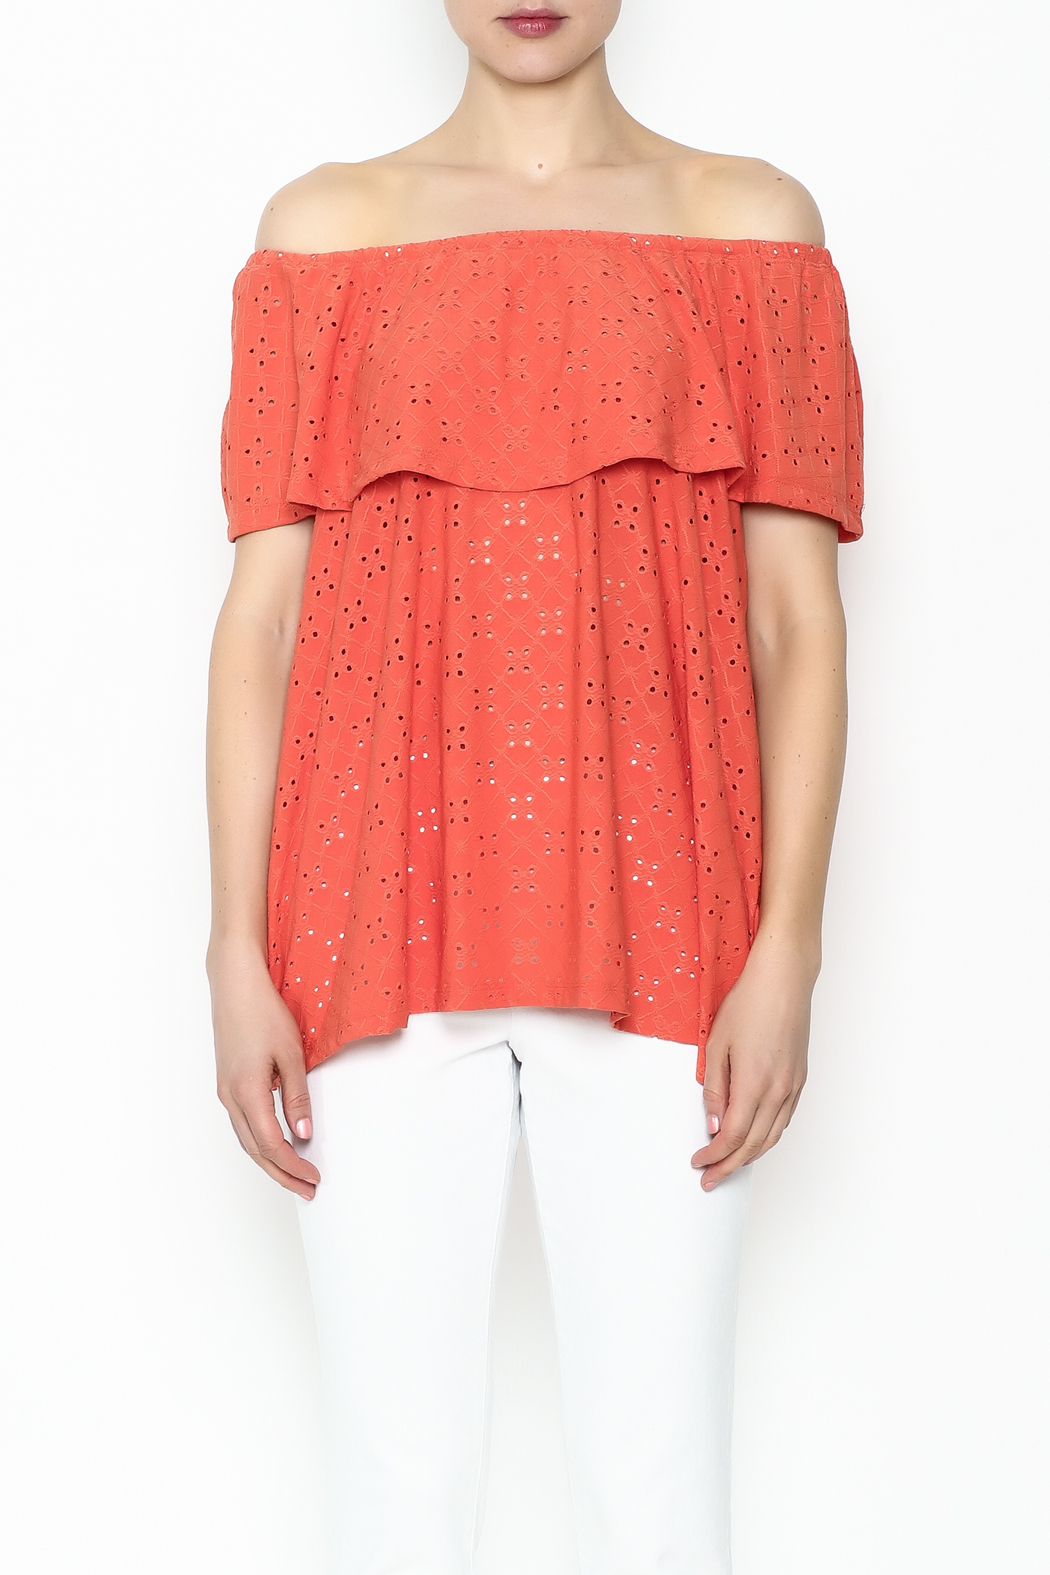 Multiples Eyelet Off Shoulder Top - Front Full Image